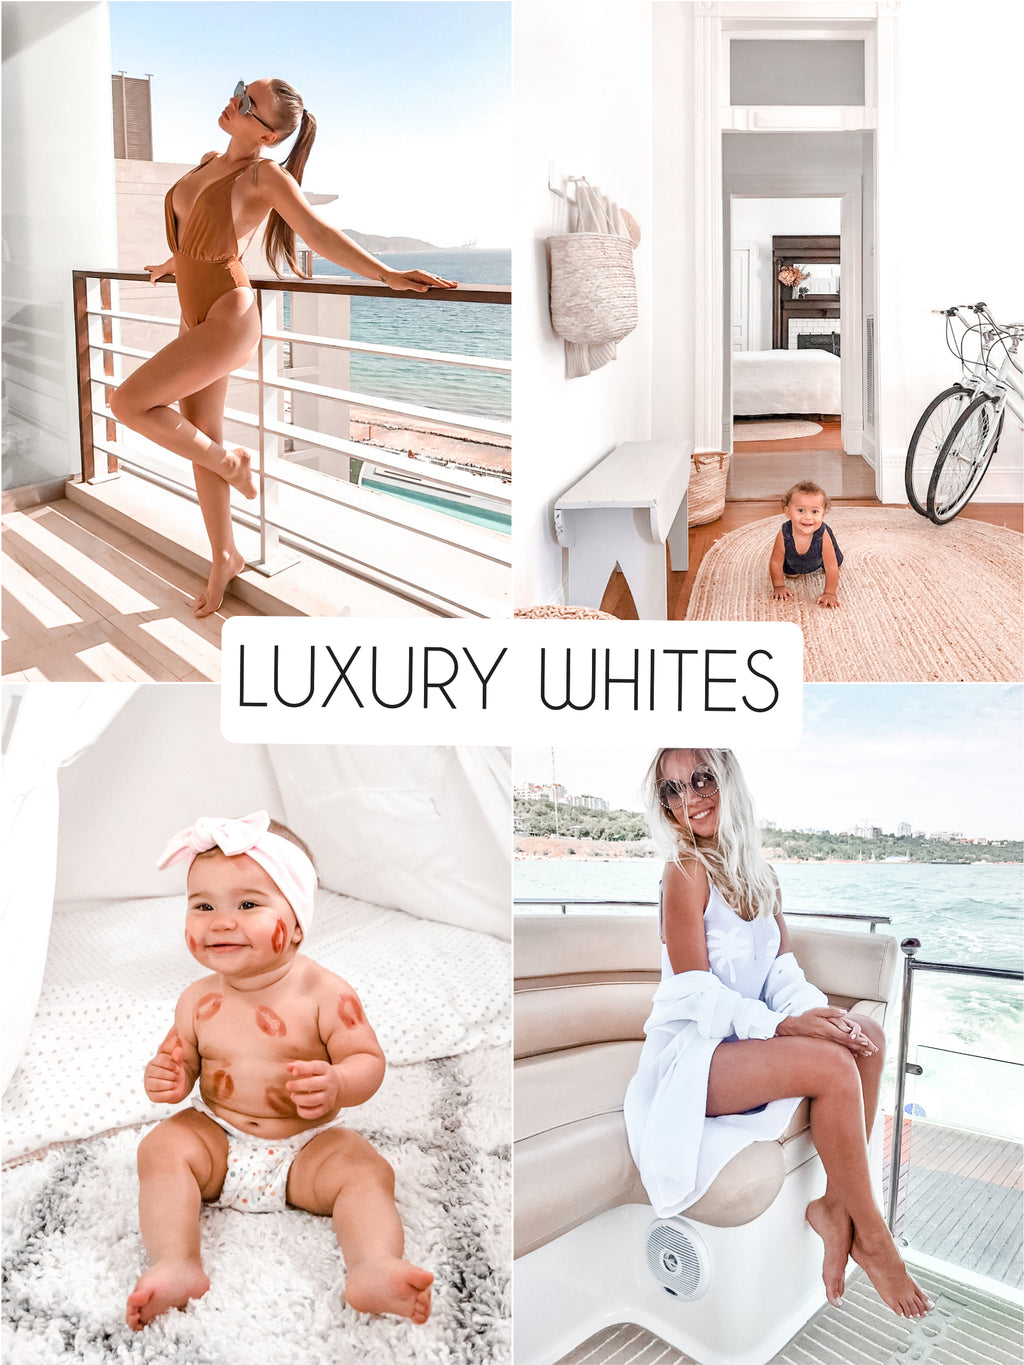 Luxury Whites - One Click Filter